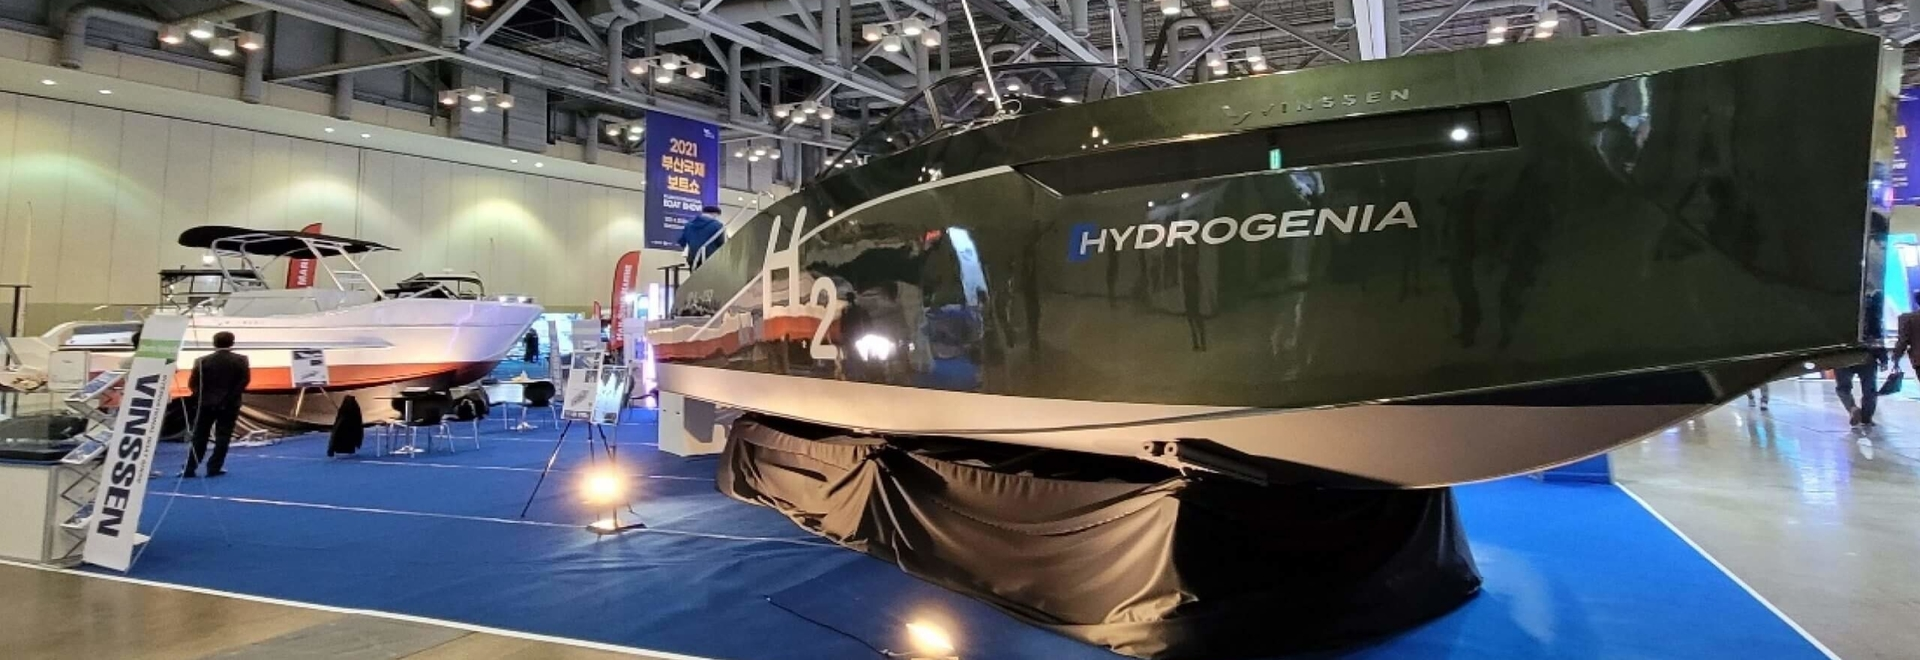 South Korea's first commercialised hydrogen boat revealed